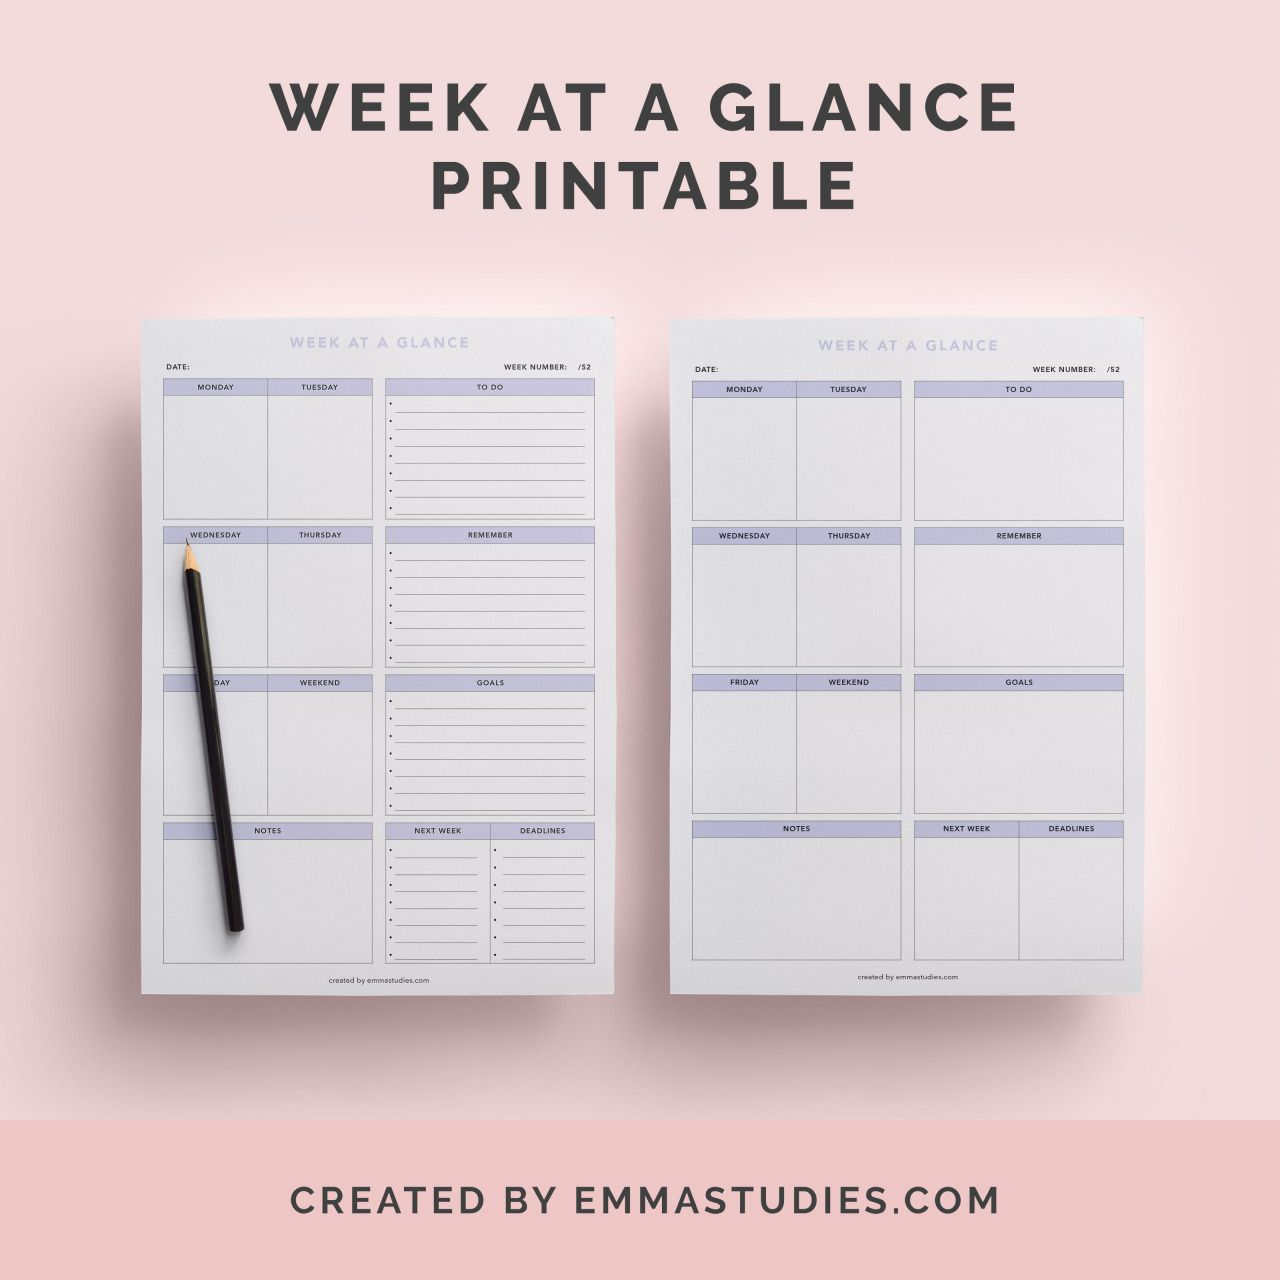 Week at a glance weekly schedule free printable for for Day at a glance calendar template